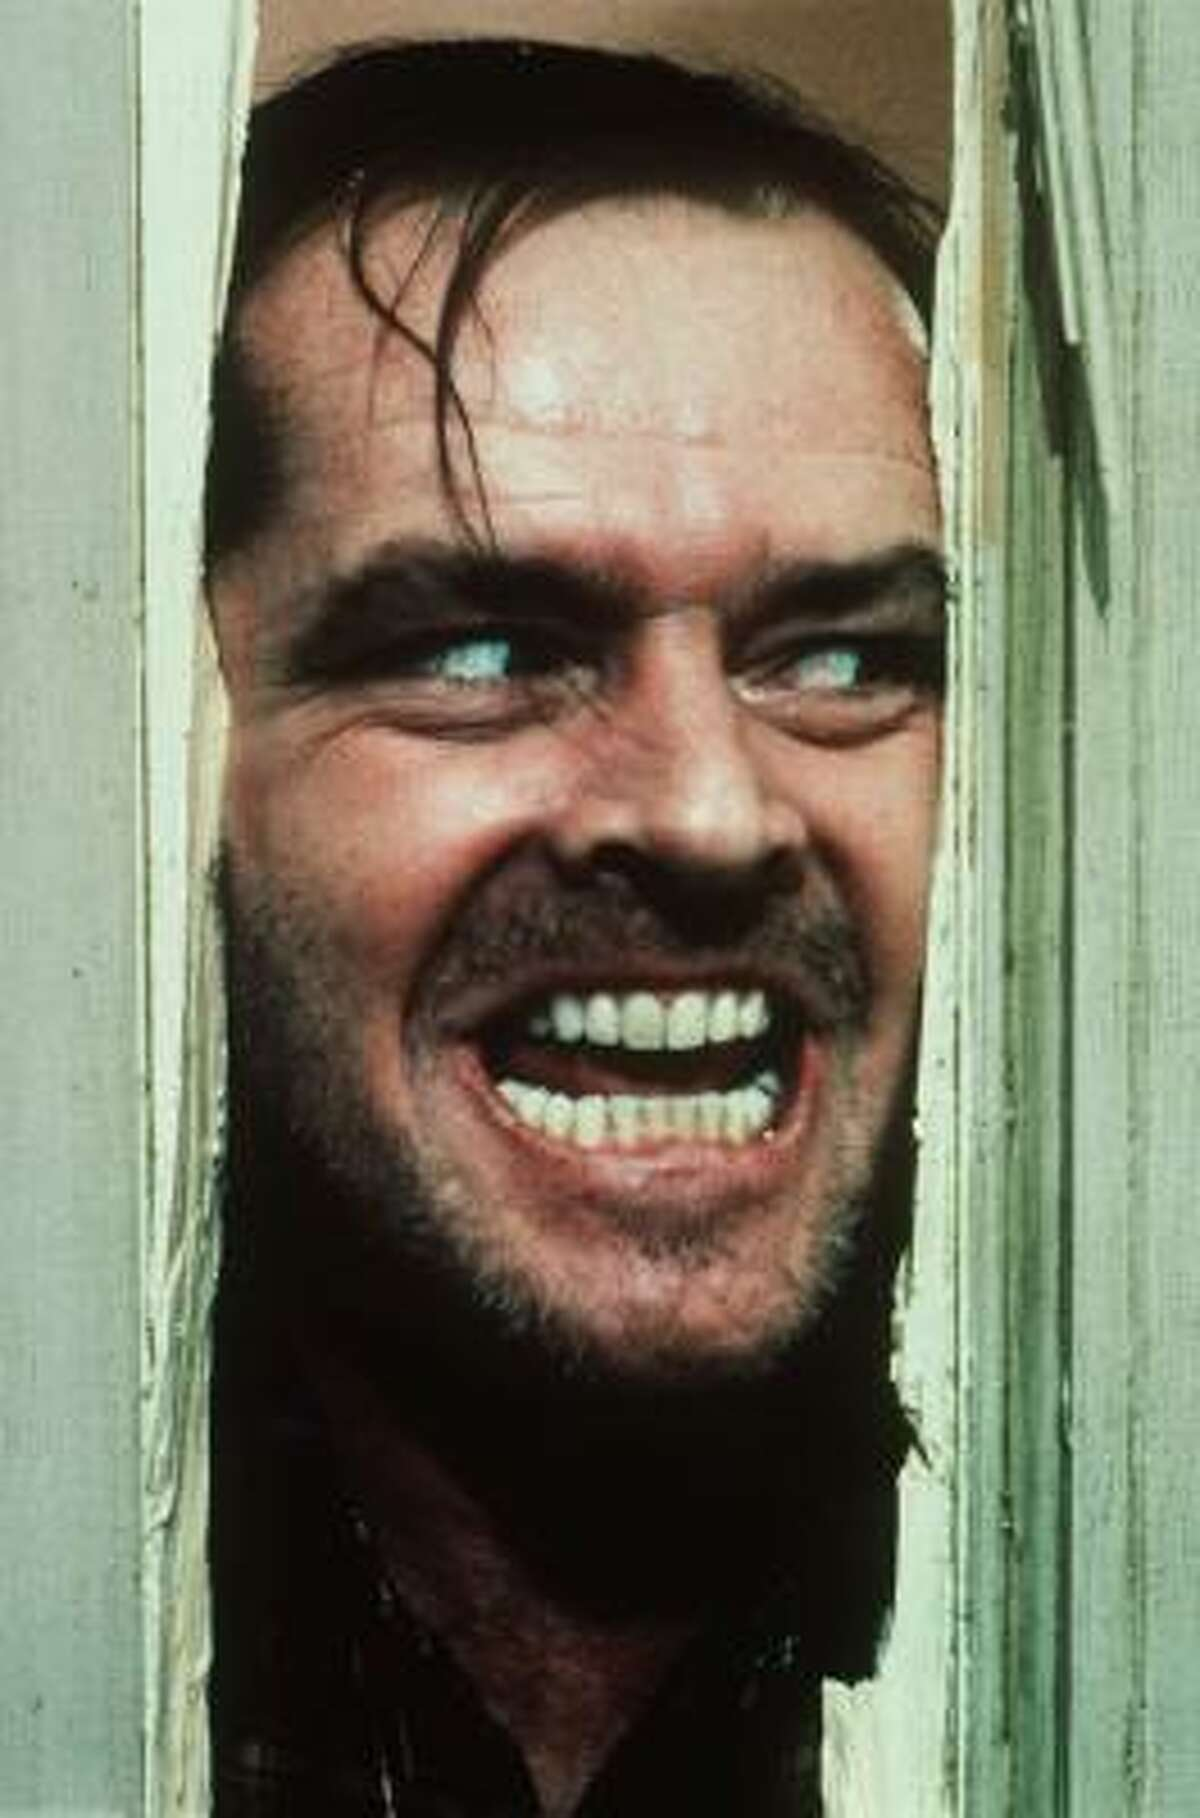 The Shining with Jack Nicholson is one of Stanley Kubrick's finest. Redrum...redrum.